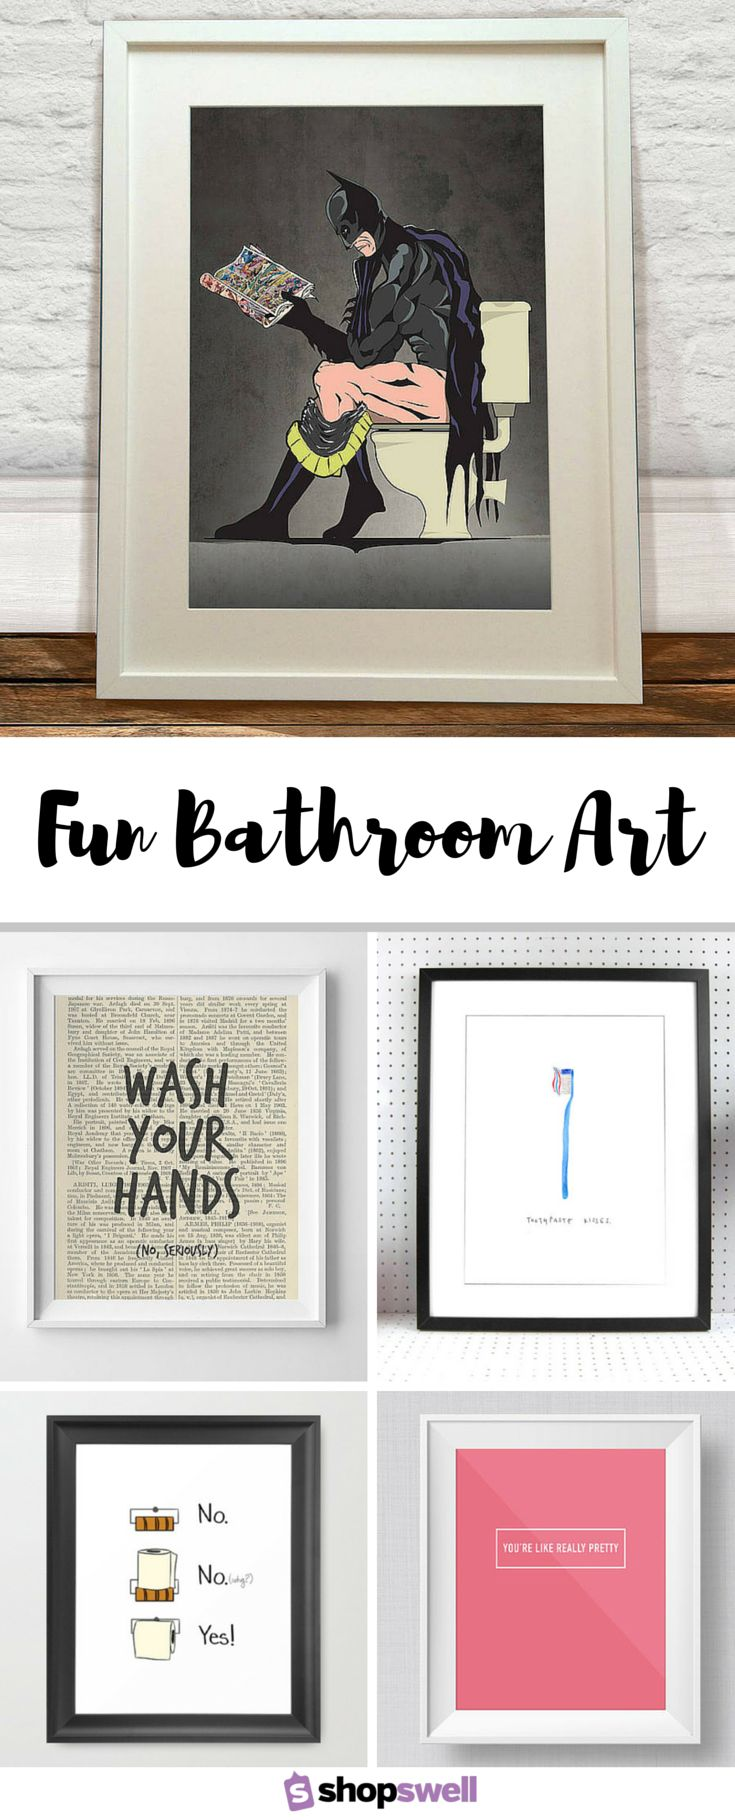 Bathroom wall art for kids - Fun Bathroom Art